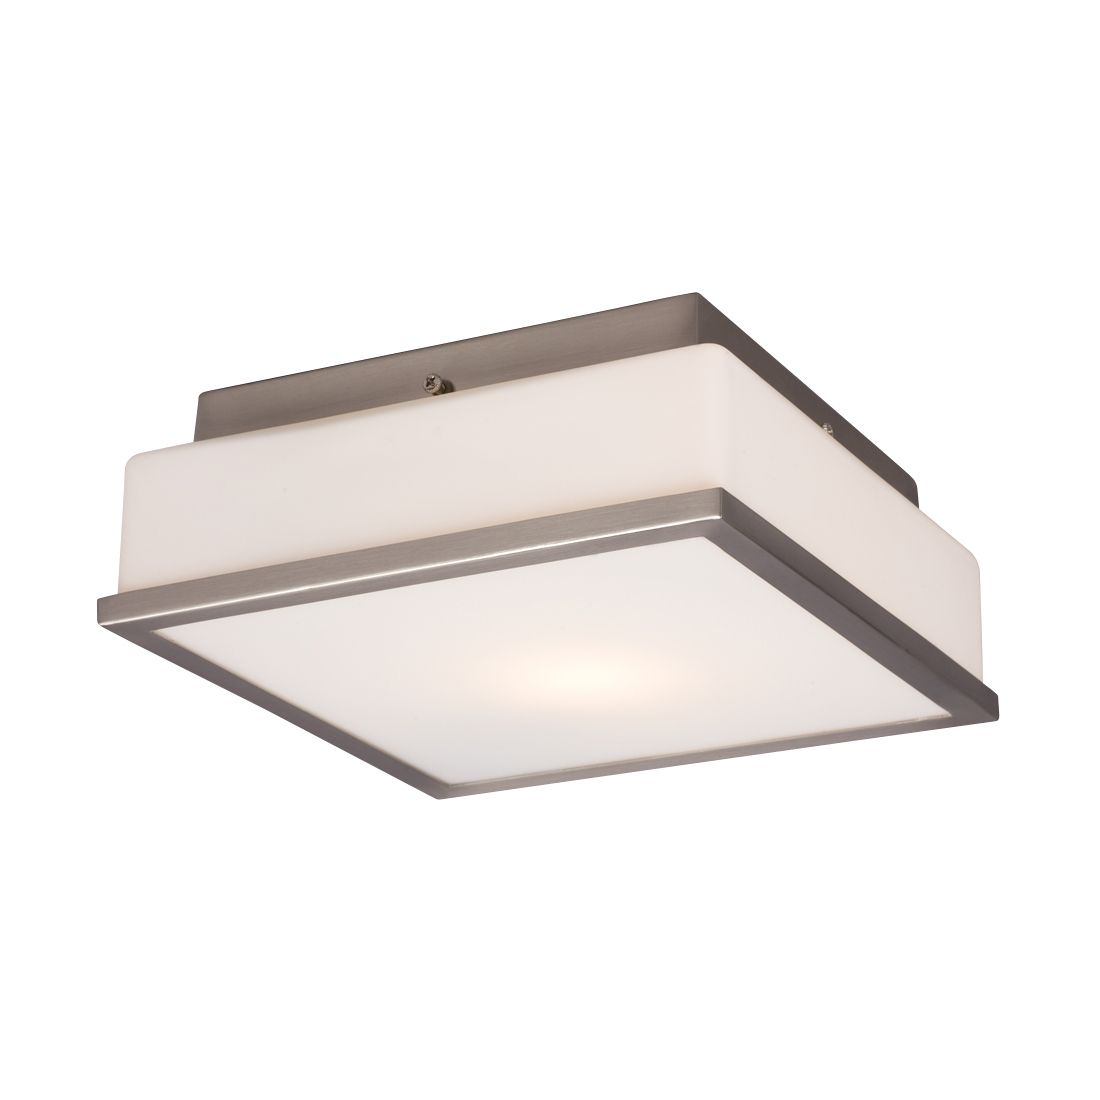 Galaxy Lighting 61350 Square Flush Mount Ceiling Light Flush Mount Lighting Flush Mount Ceiling Lights Galaxy Lights